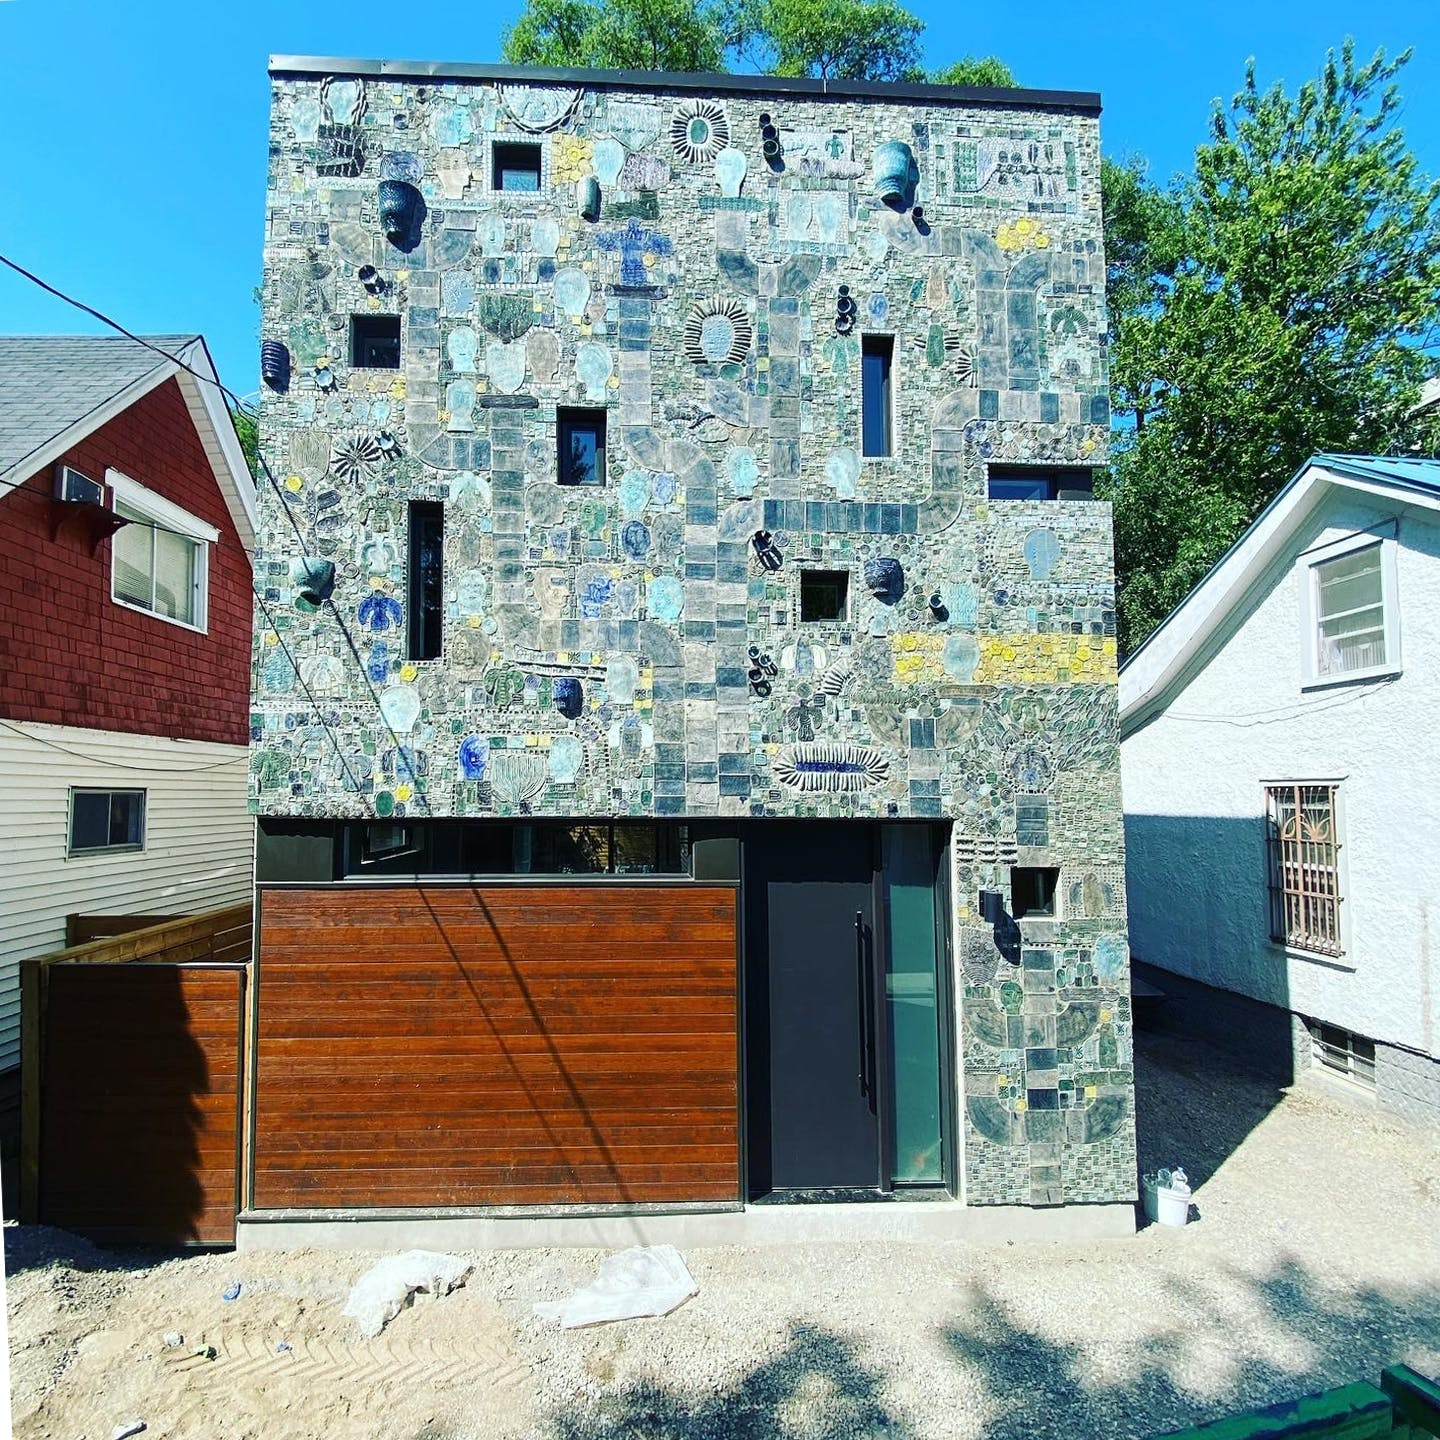 8 Henry Street - The Mosaic House